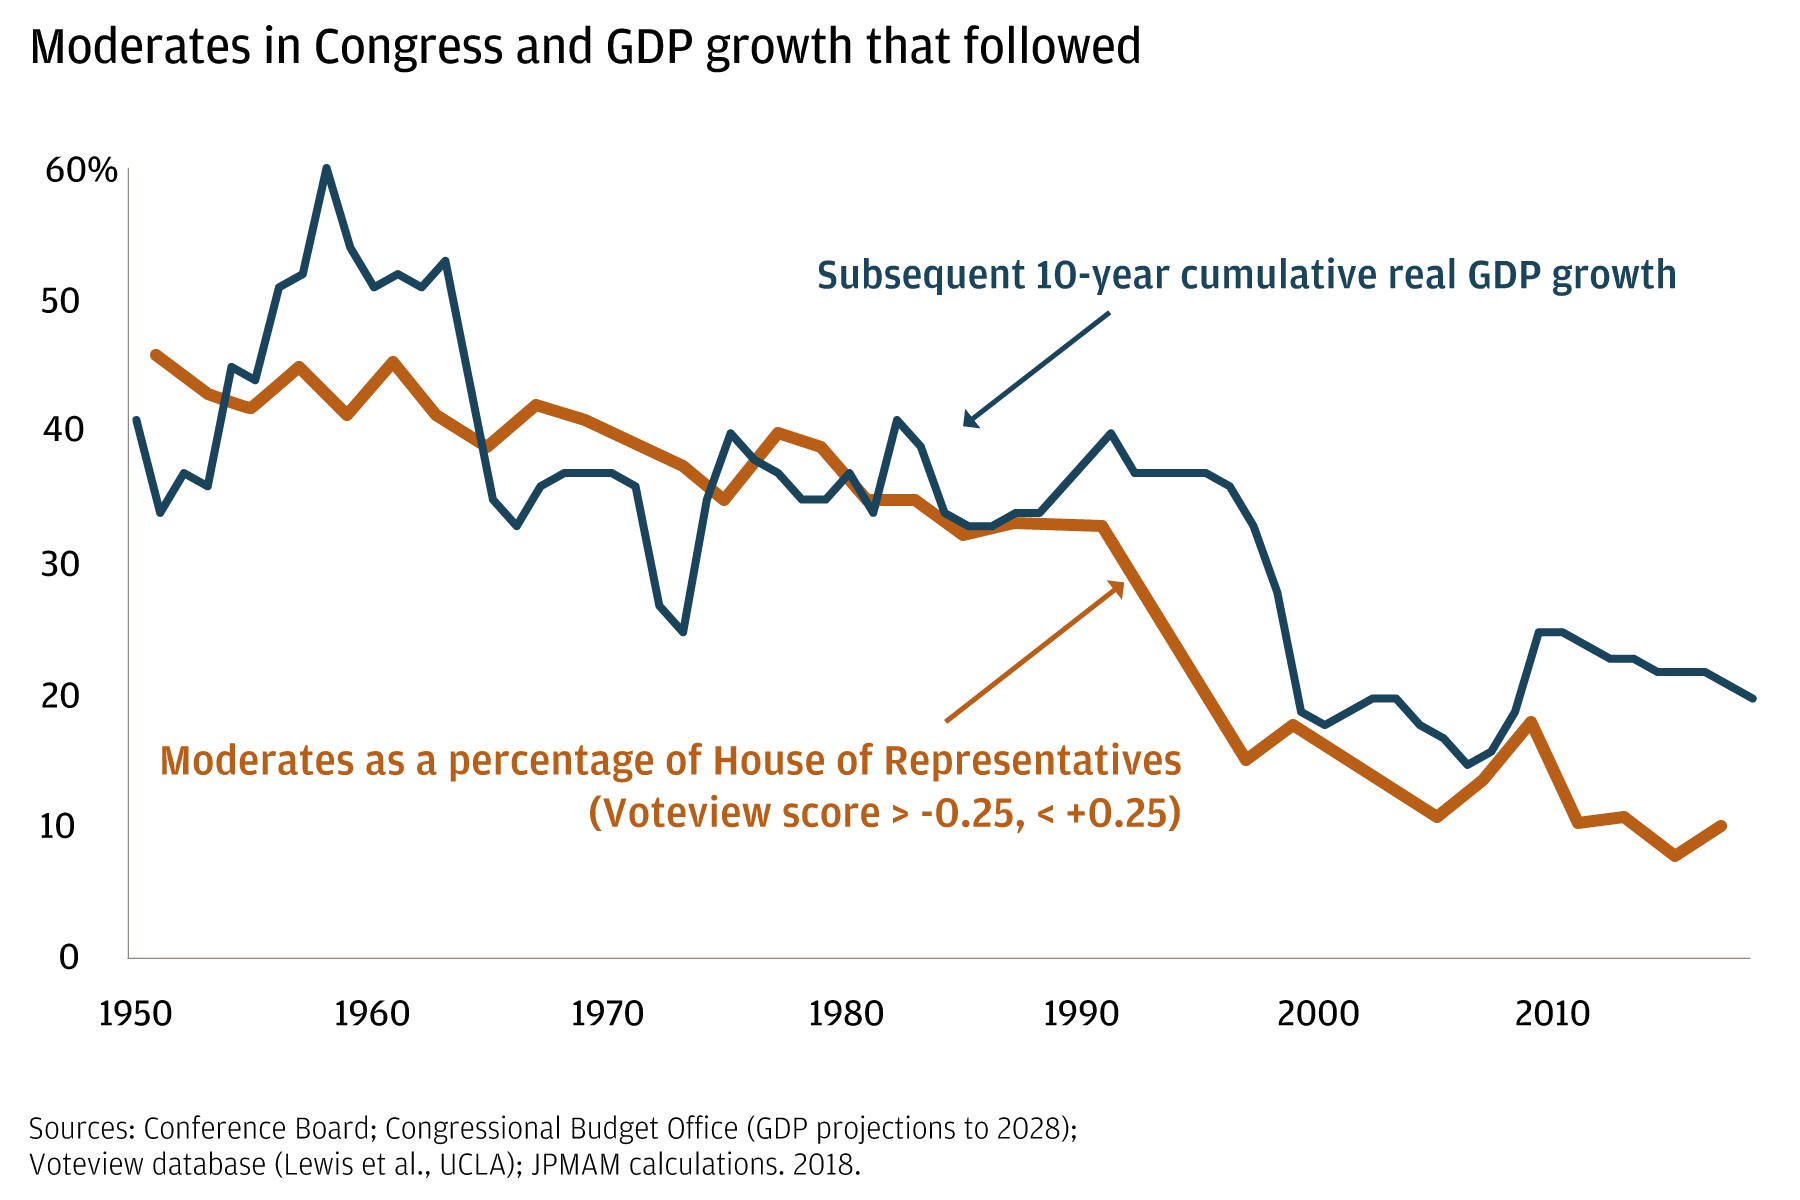 This two-line graph draws a link between GDP performance and the percentage of moderates in the House of Representatives, 1950-2017.